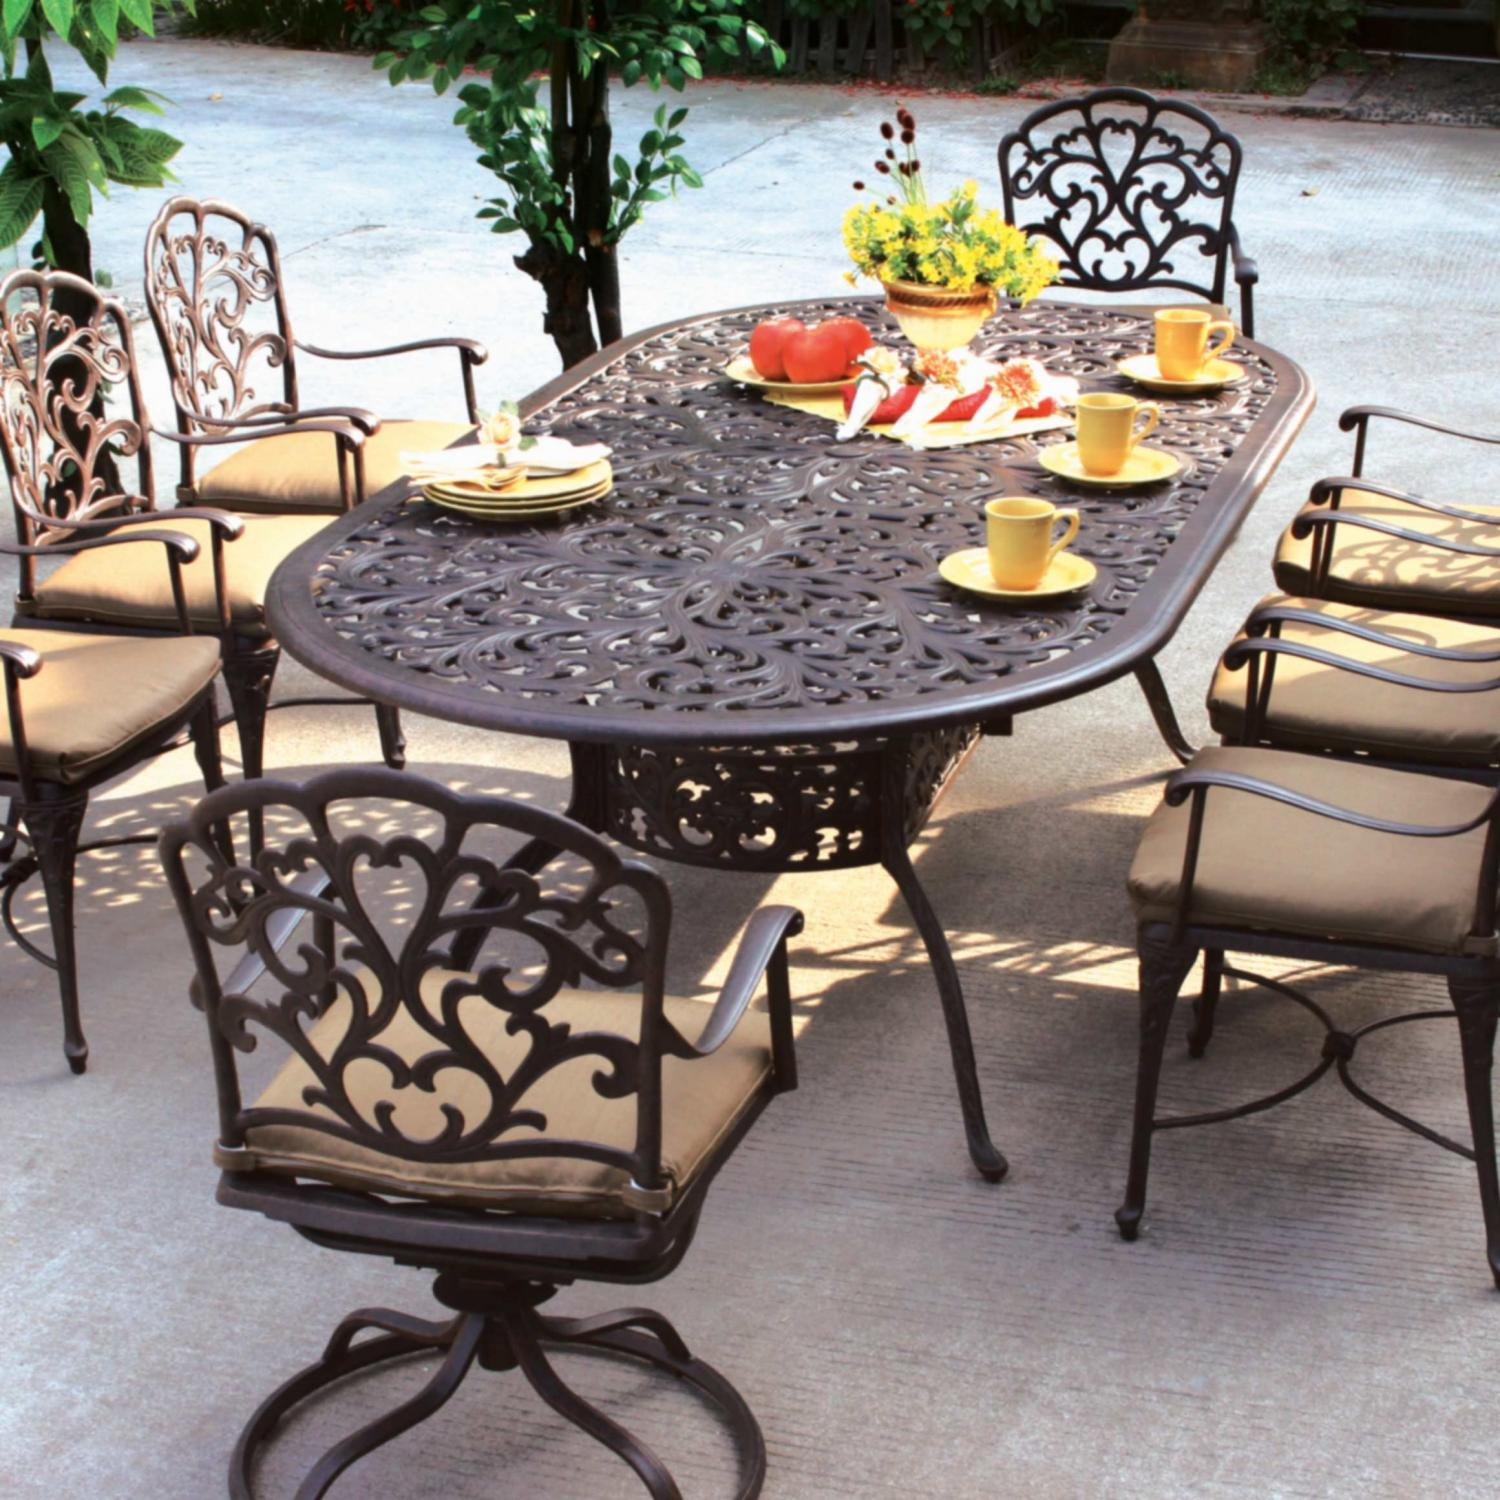 patio dining sets with fire pits photo - 8